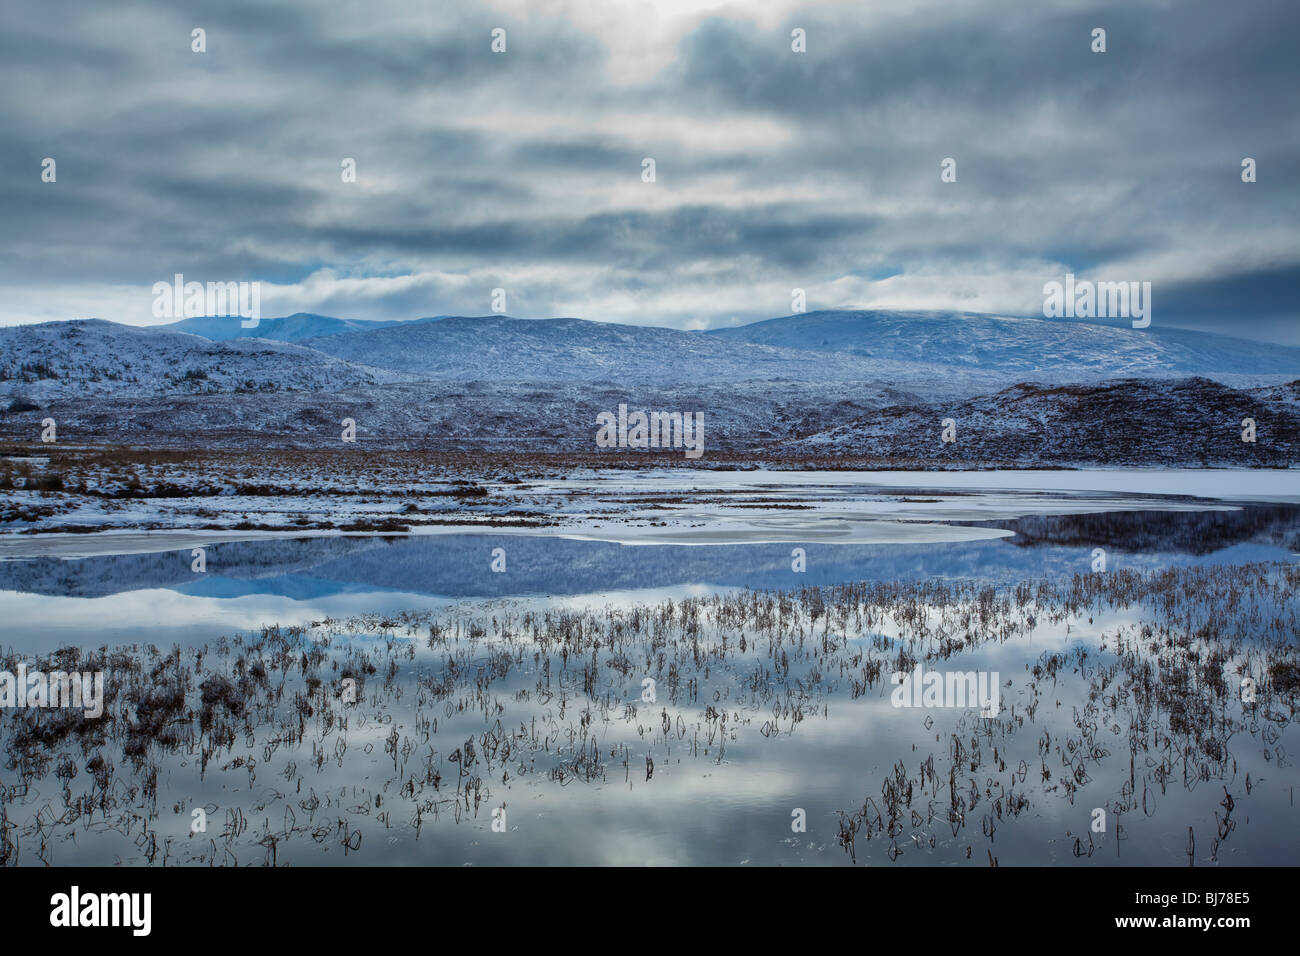 Scotland, Scottish Highlands, Loch a' Chuilinn. The subtle shades of a mid-winters day - Stock Image